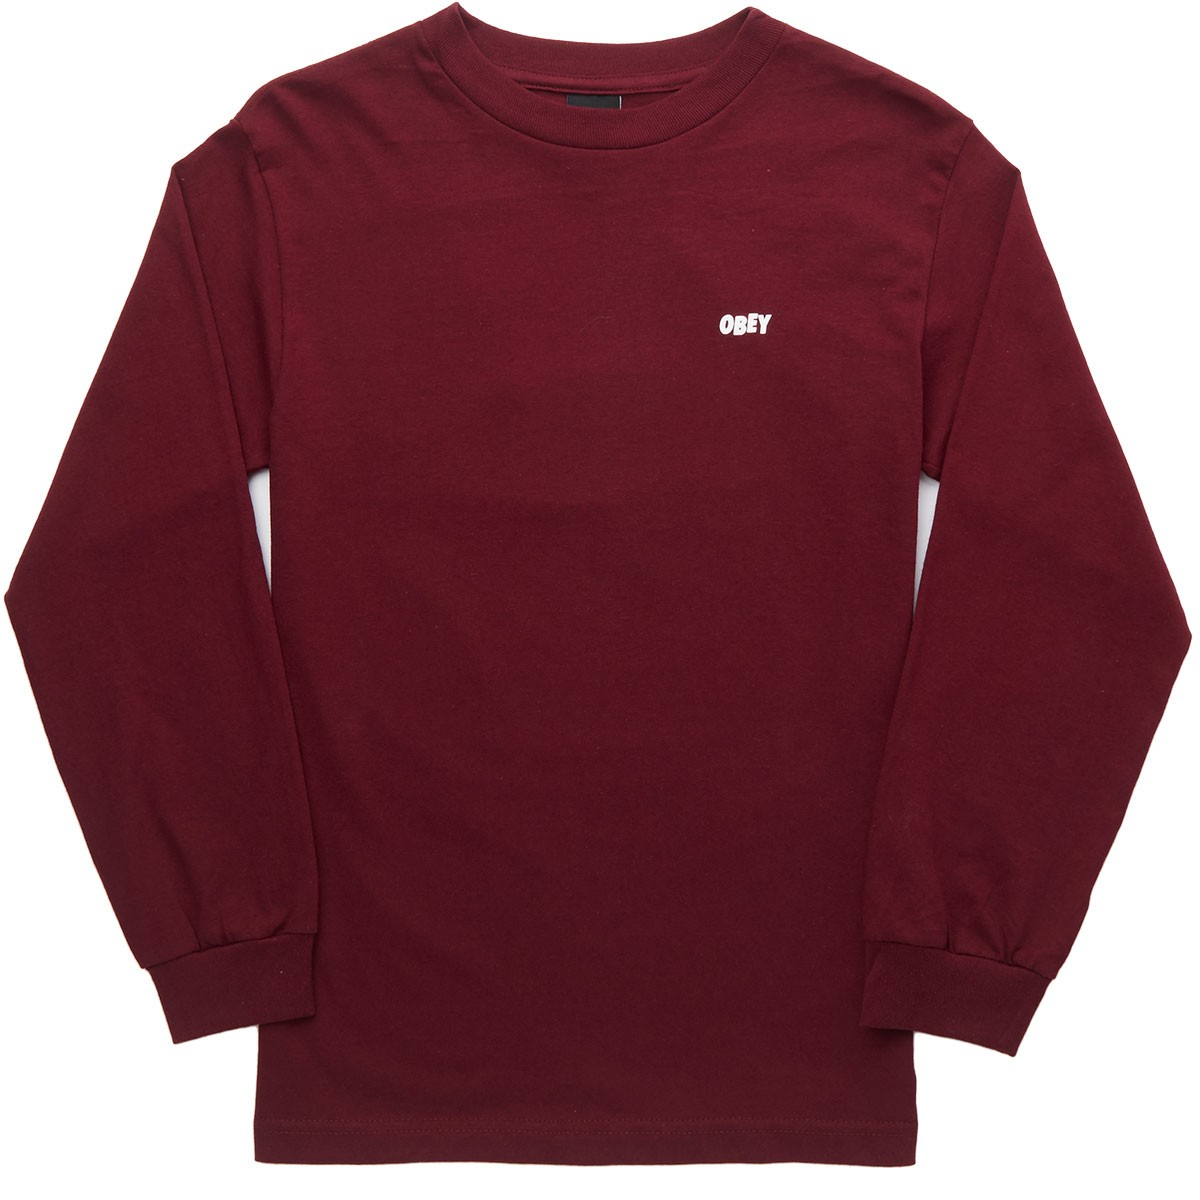 Unusual Activity Long Sleeve T-Shirt - Burgundy